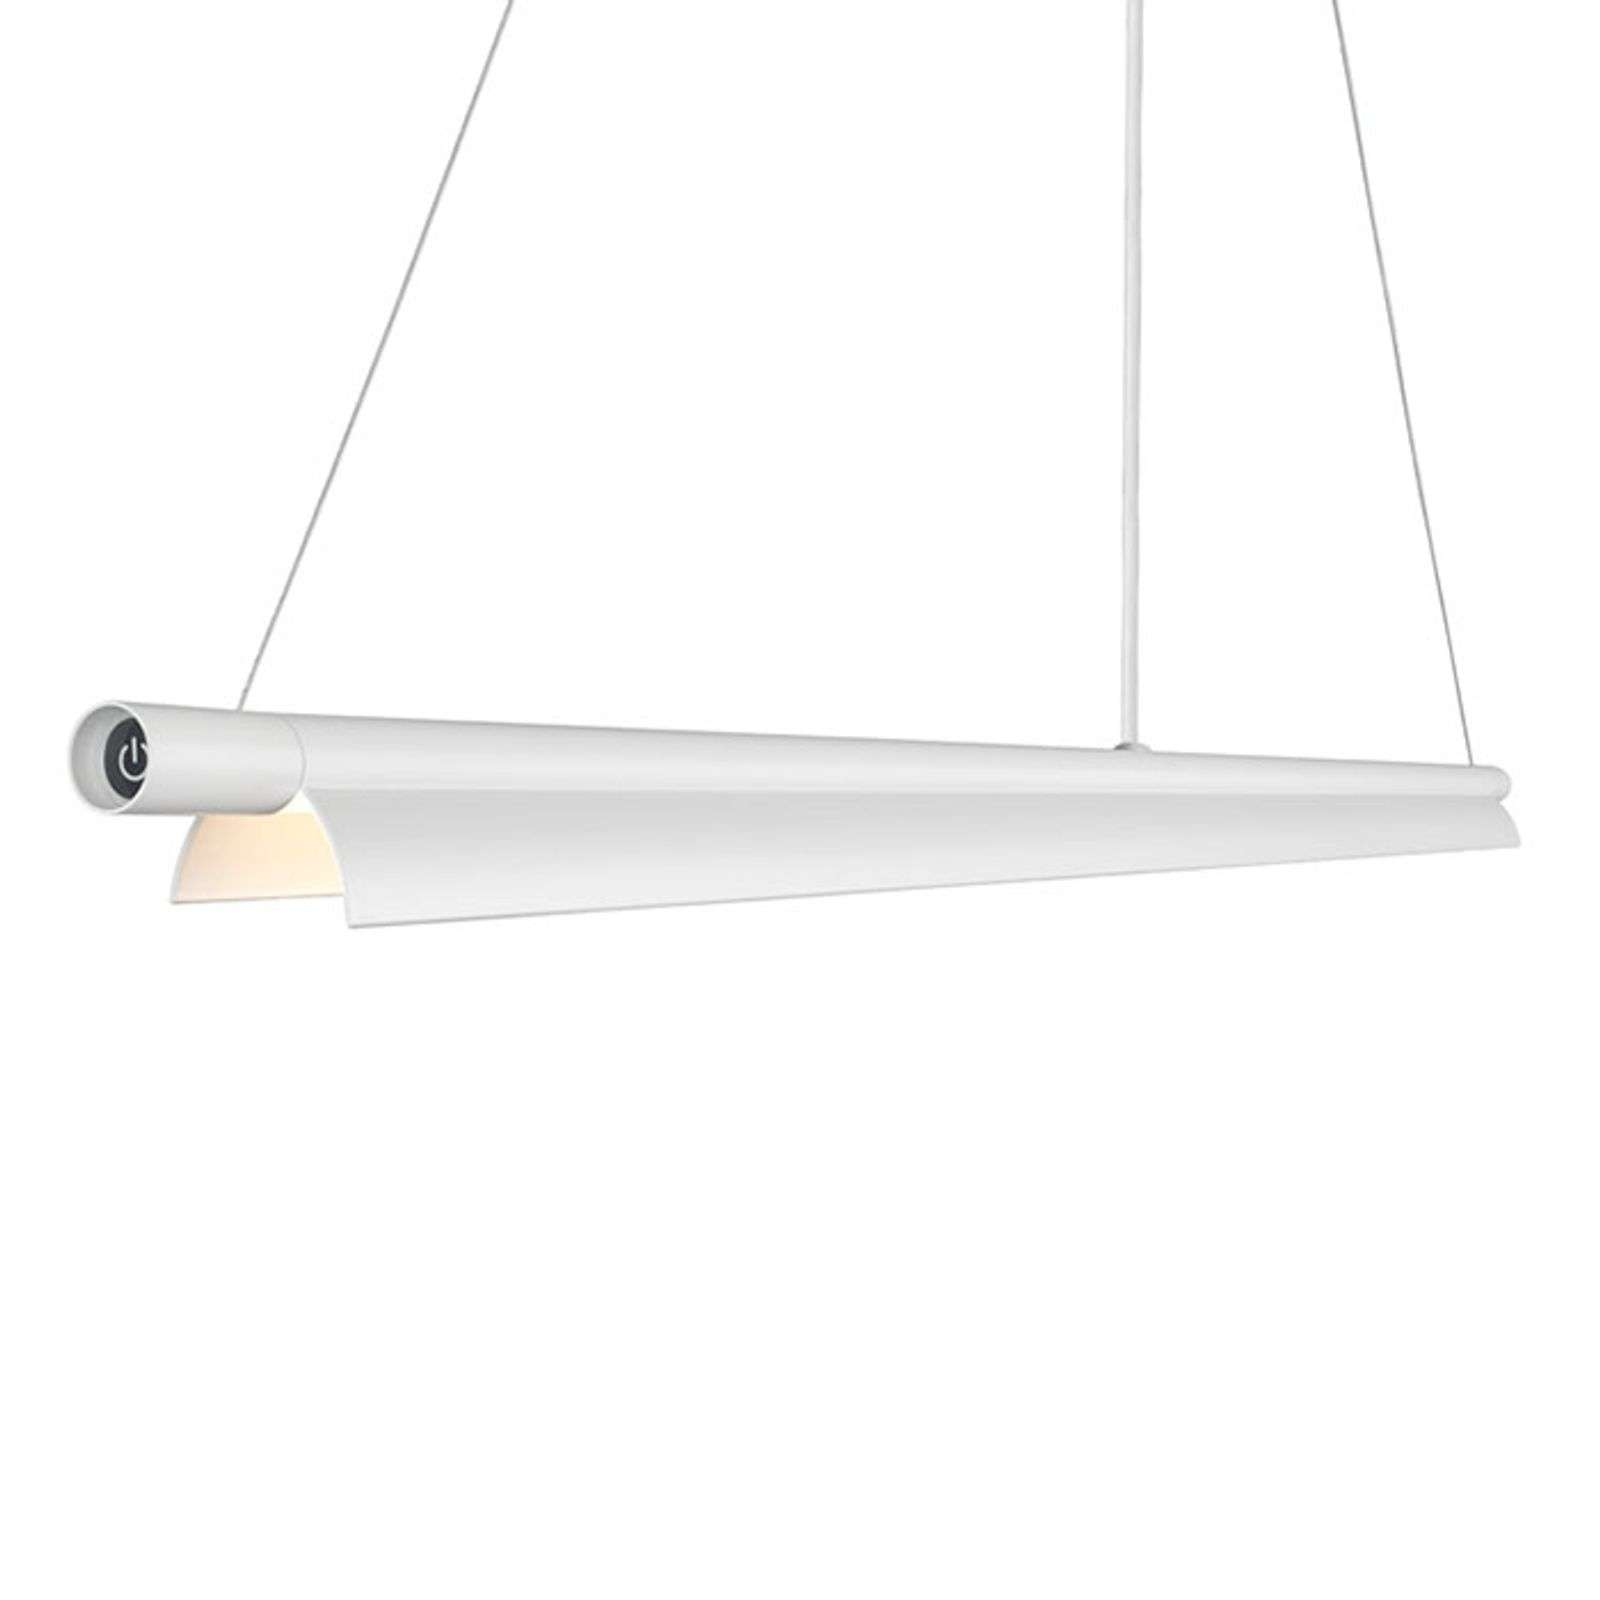 Suspension LED Space B allongée blanche